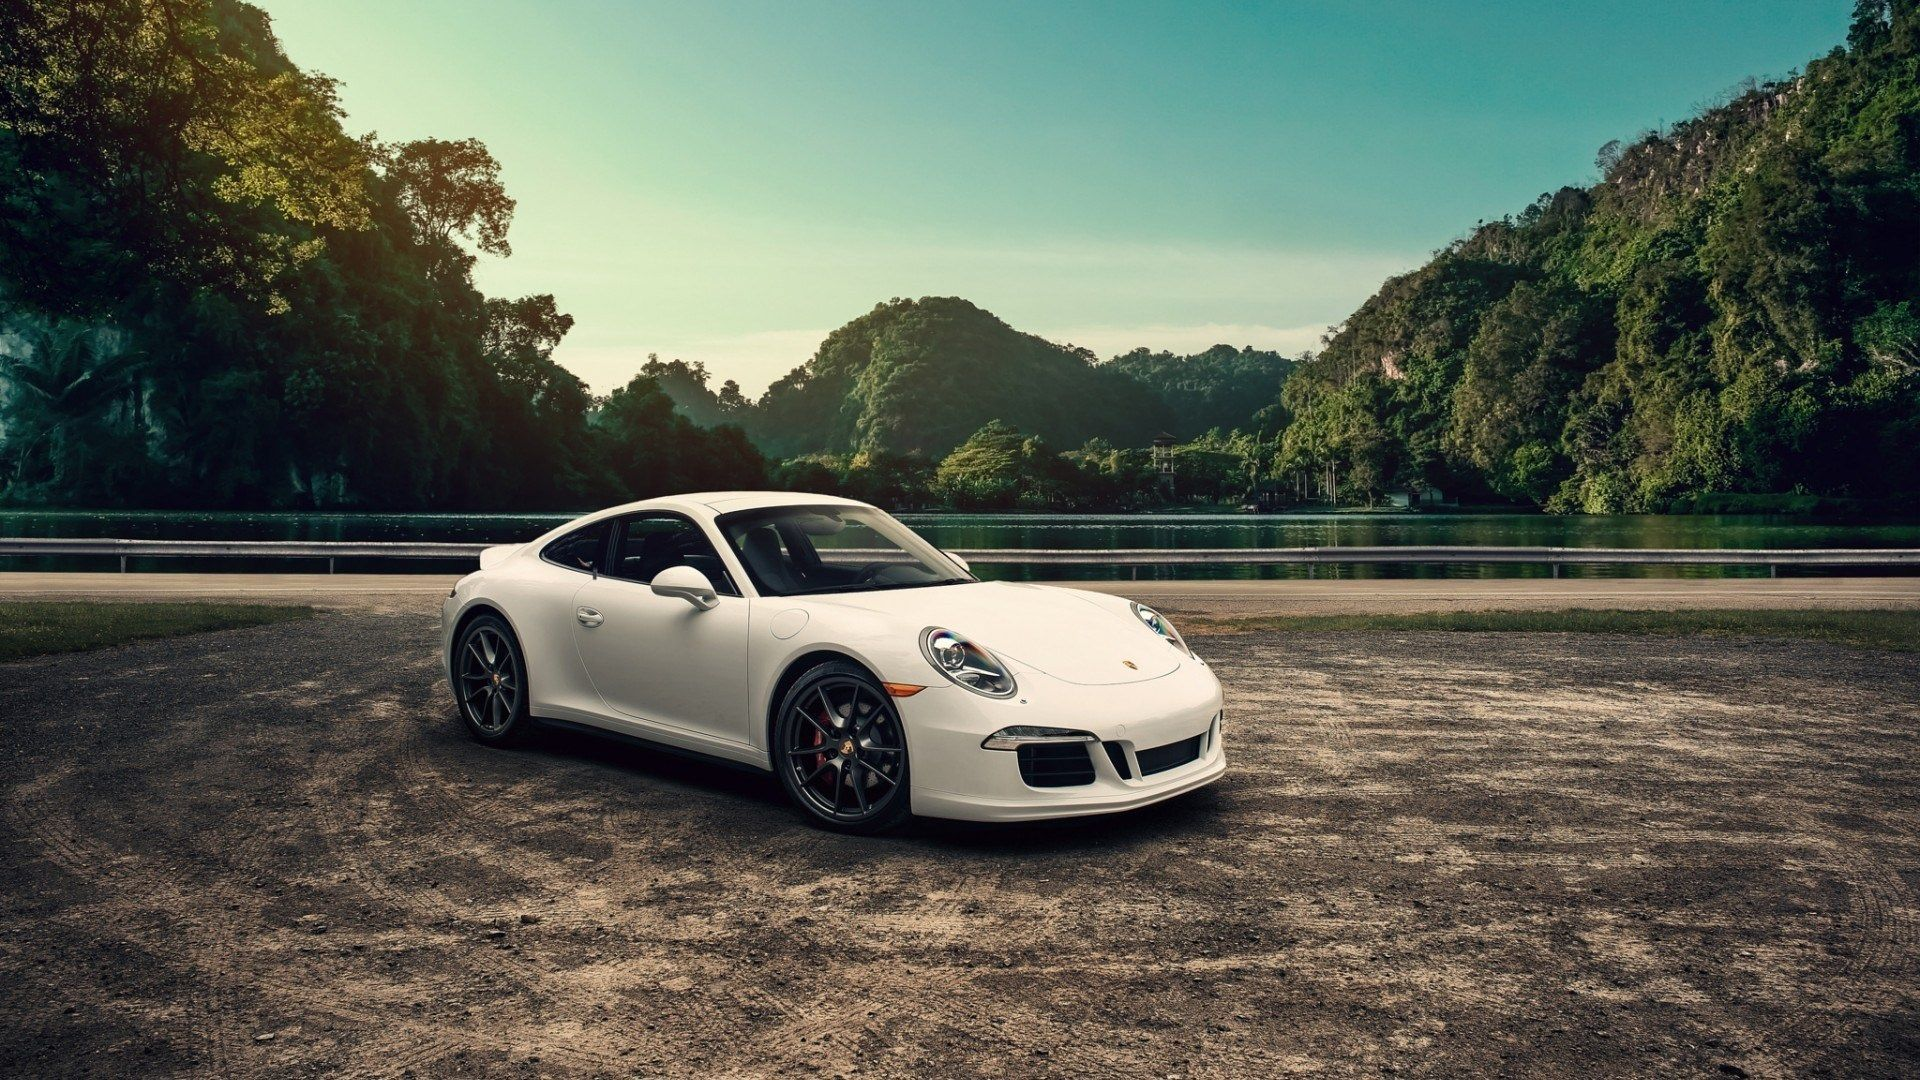 Porsche Car Full Hd Wallpapers Free Download 40